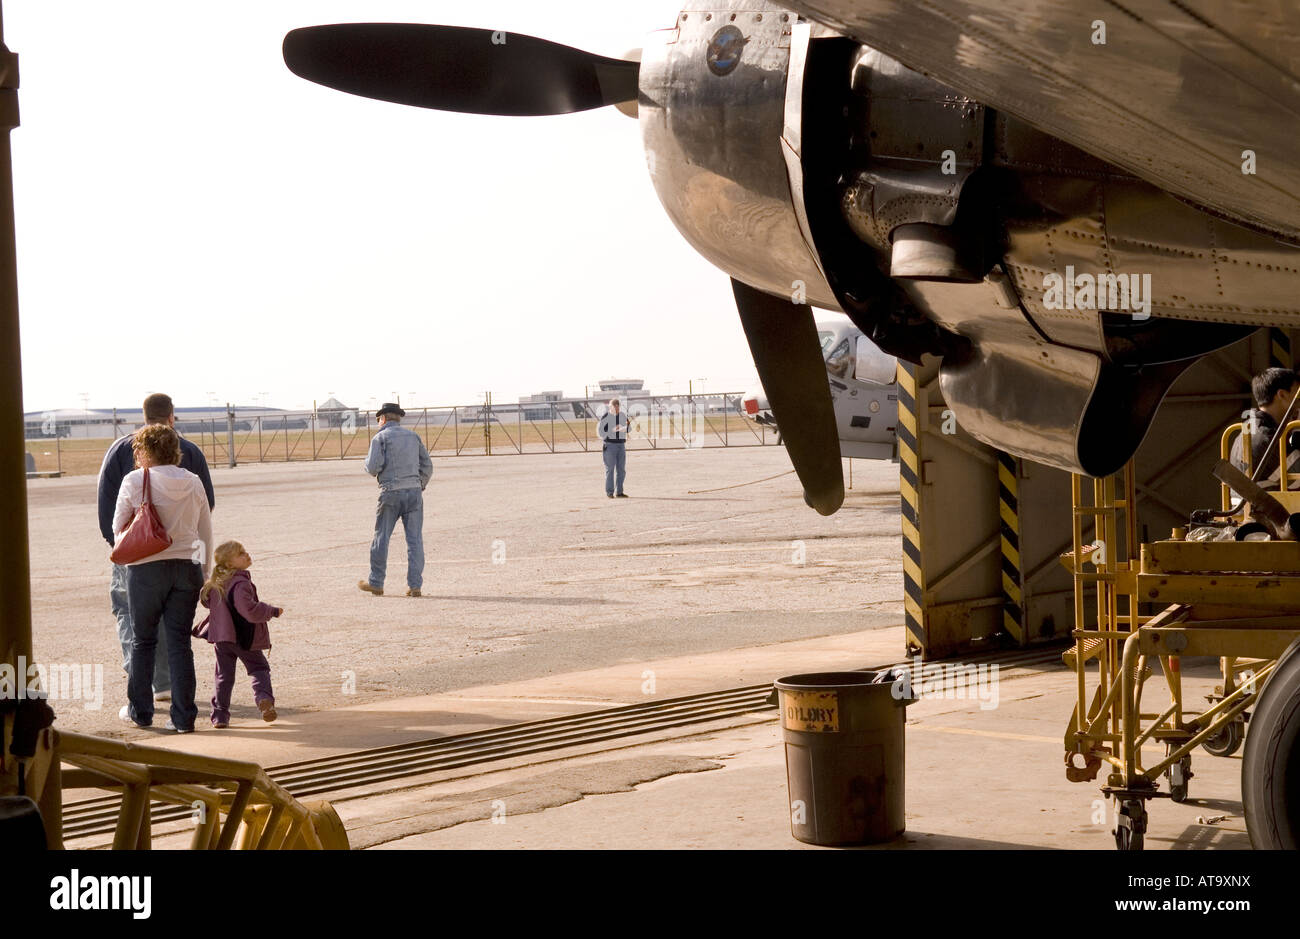 Little Girl Turns to Look Back at Plane in Hanger at Carolinas Aviation Museum in Charlotte NC USA - Stock Image